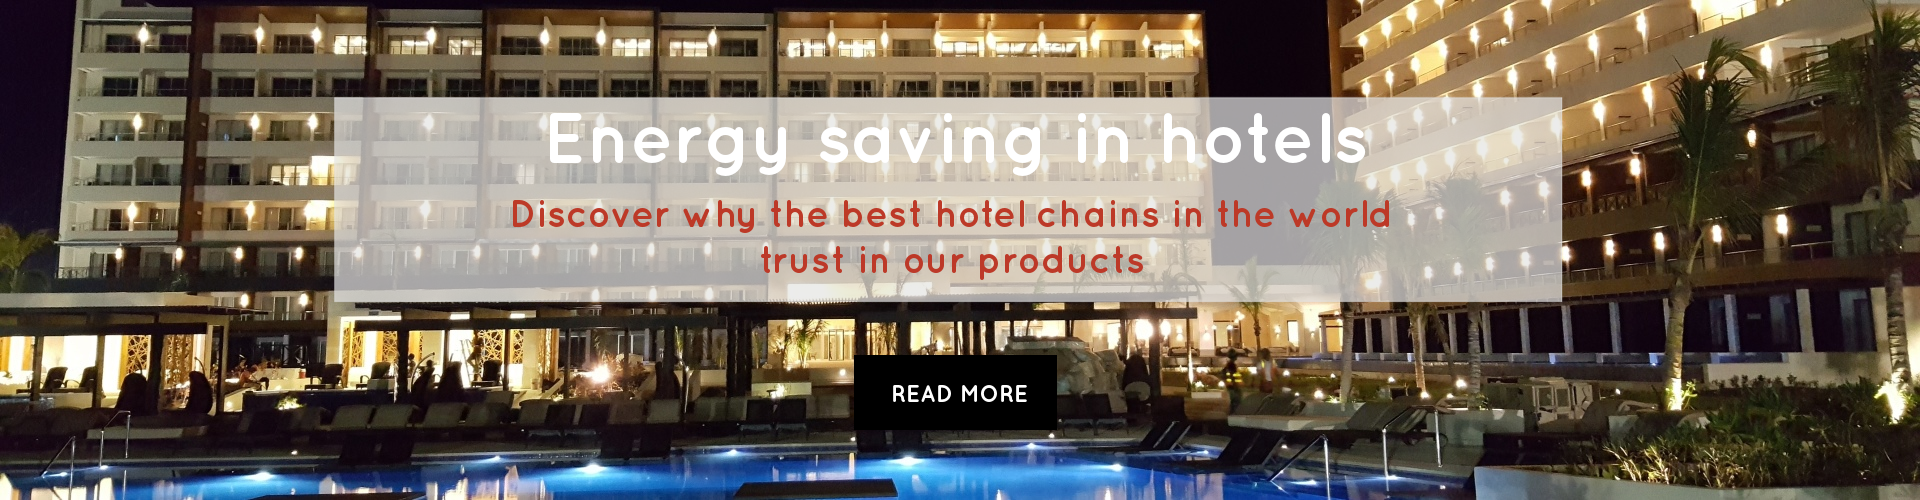 Energy saving in hotels discover why the best hotel chains in the world trust in our products